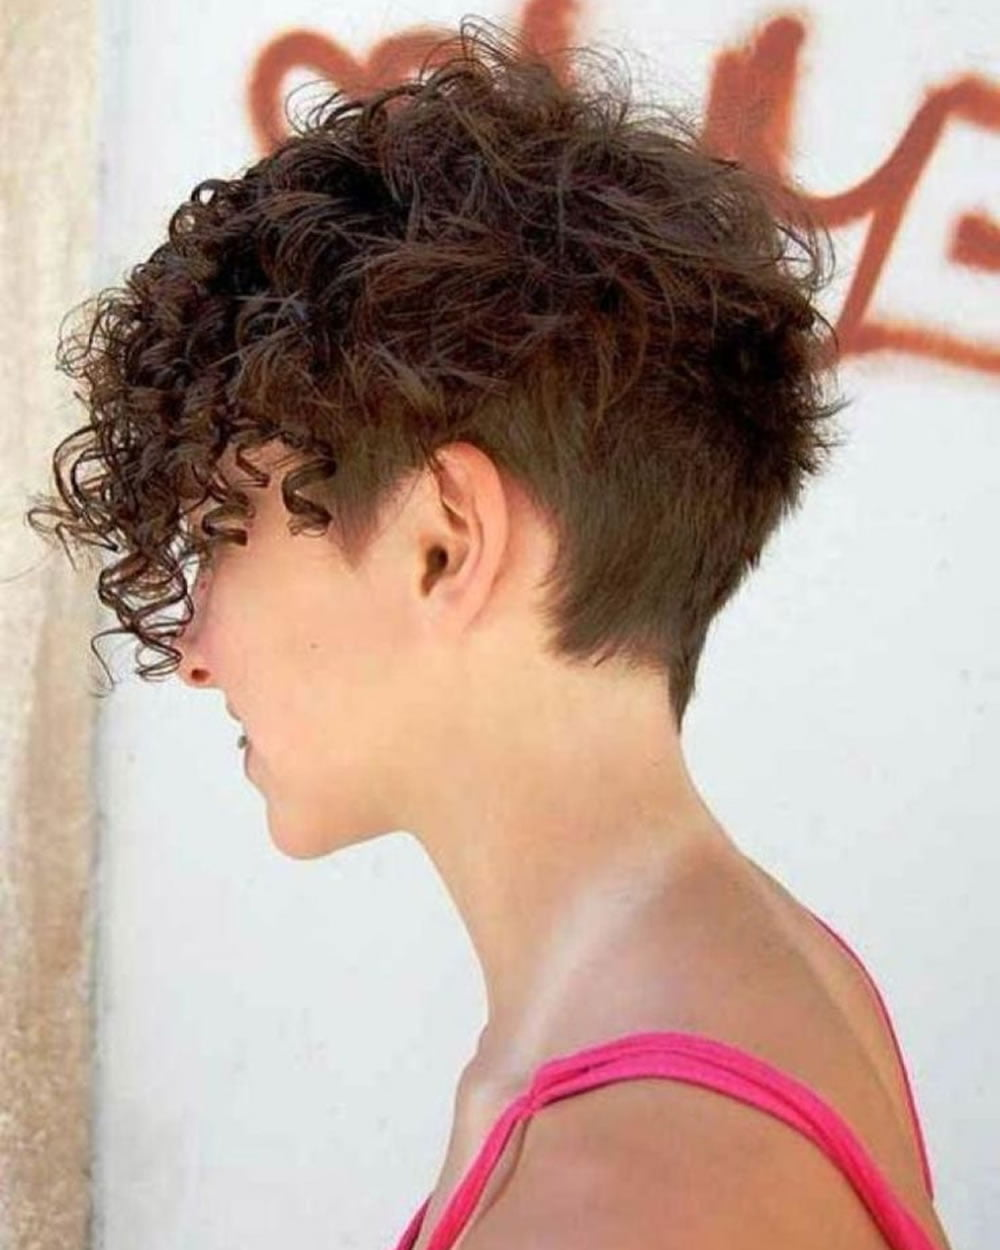 Haircut Designs For Curly Hair